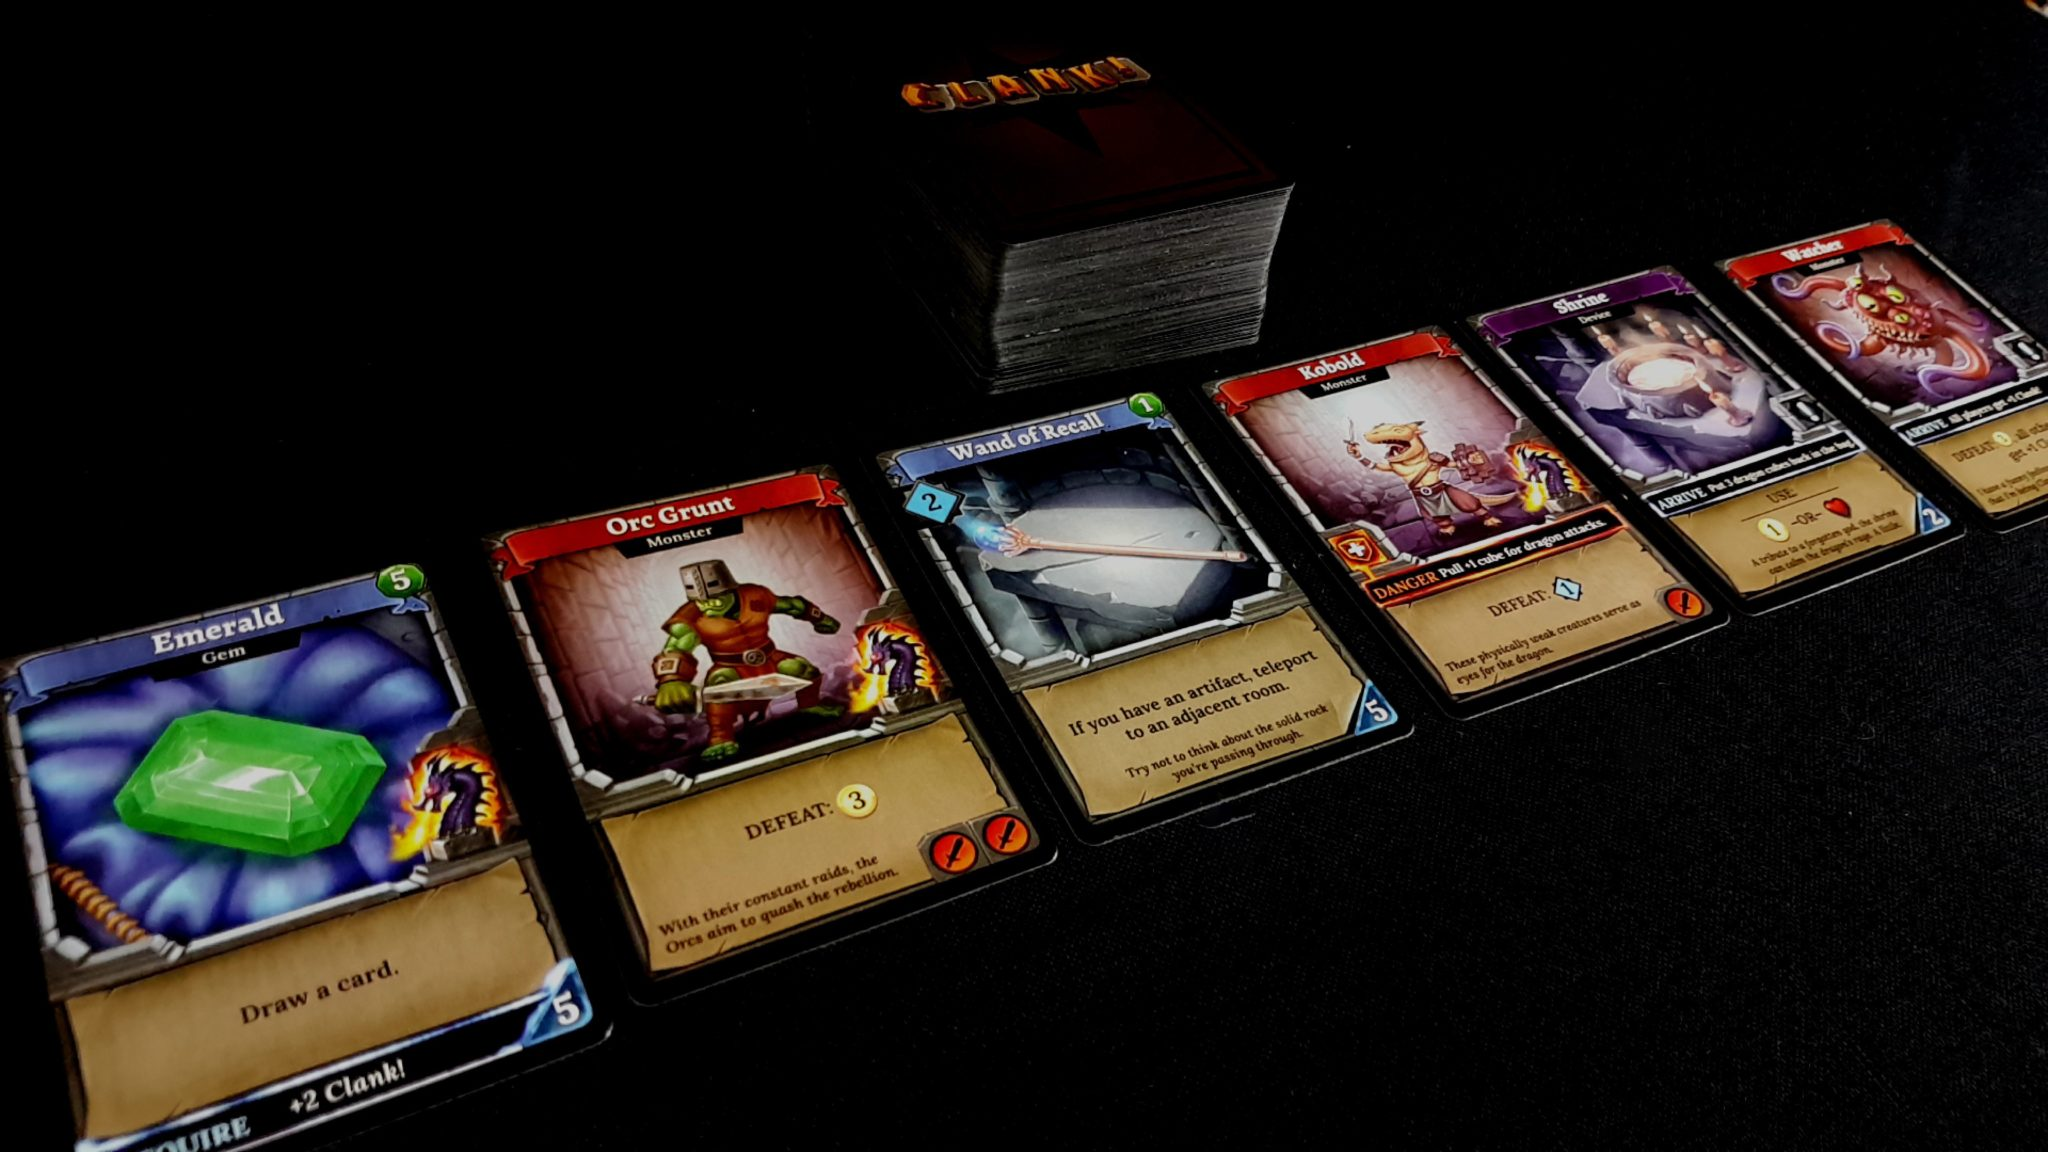 The Dungeon Row of cards